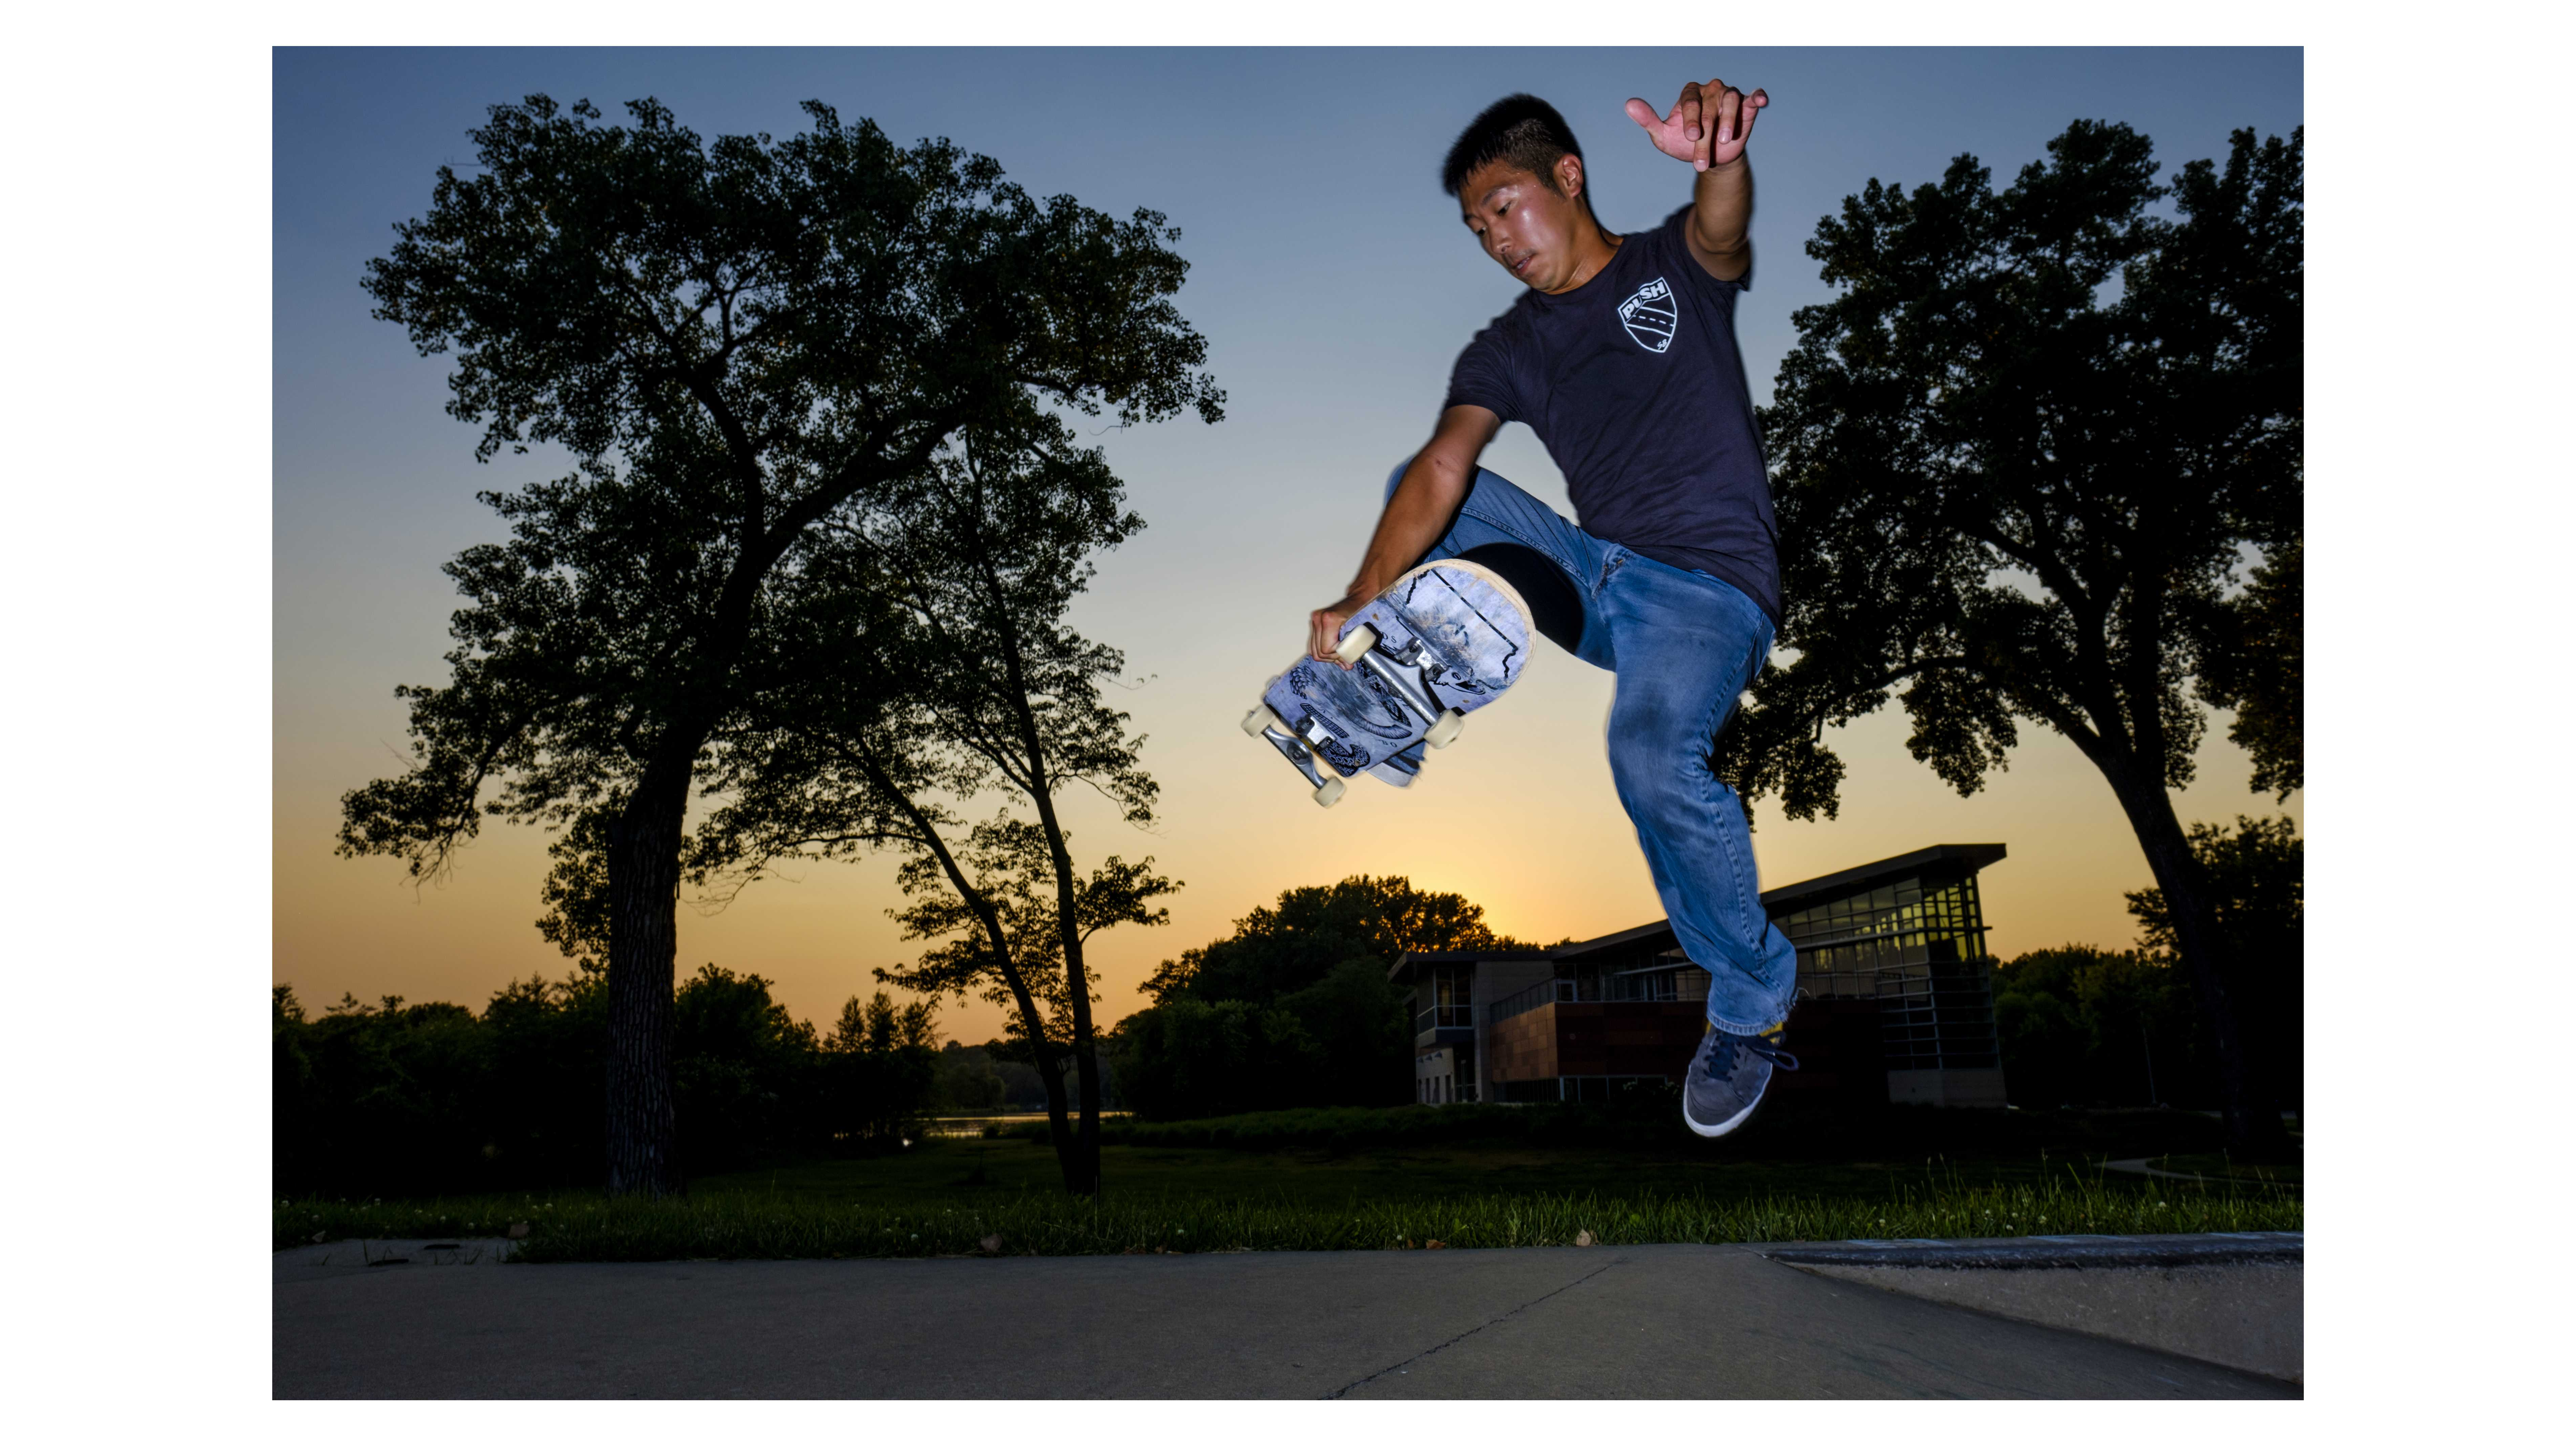 Push Skateboards founder Ben Peterson skates at the Iowa City Skate Park on Friday, June 15, 2018. Peterson often works more than 70 hours in a week between his full time job and responsibilities with Push, but still finds time to skateboard himself. (Nick Rohlman/The Daily Iowan)